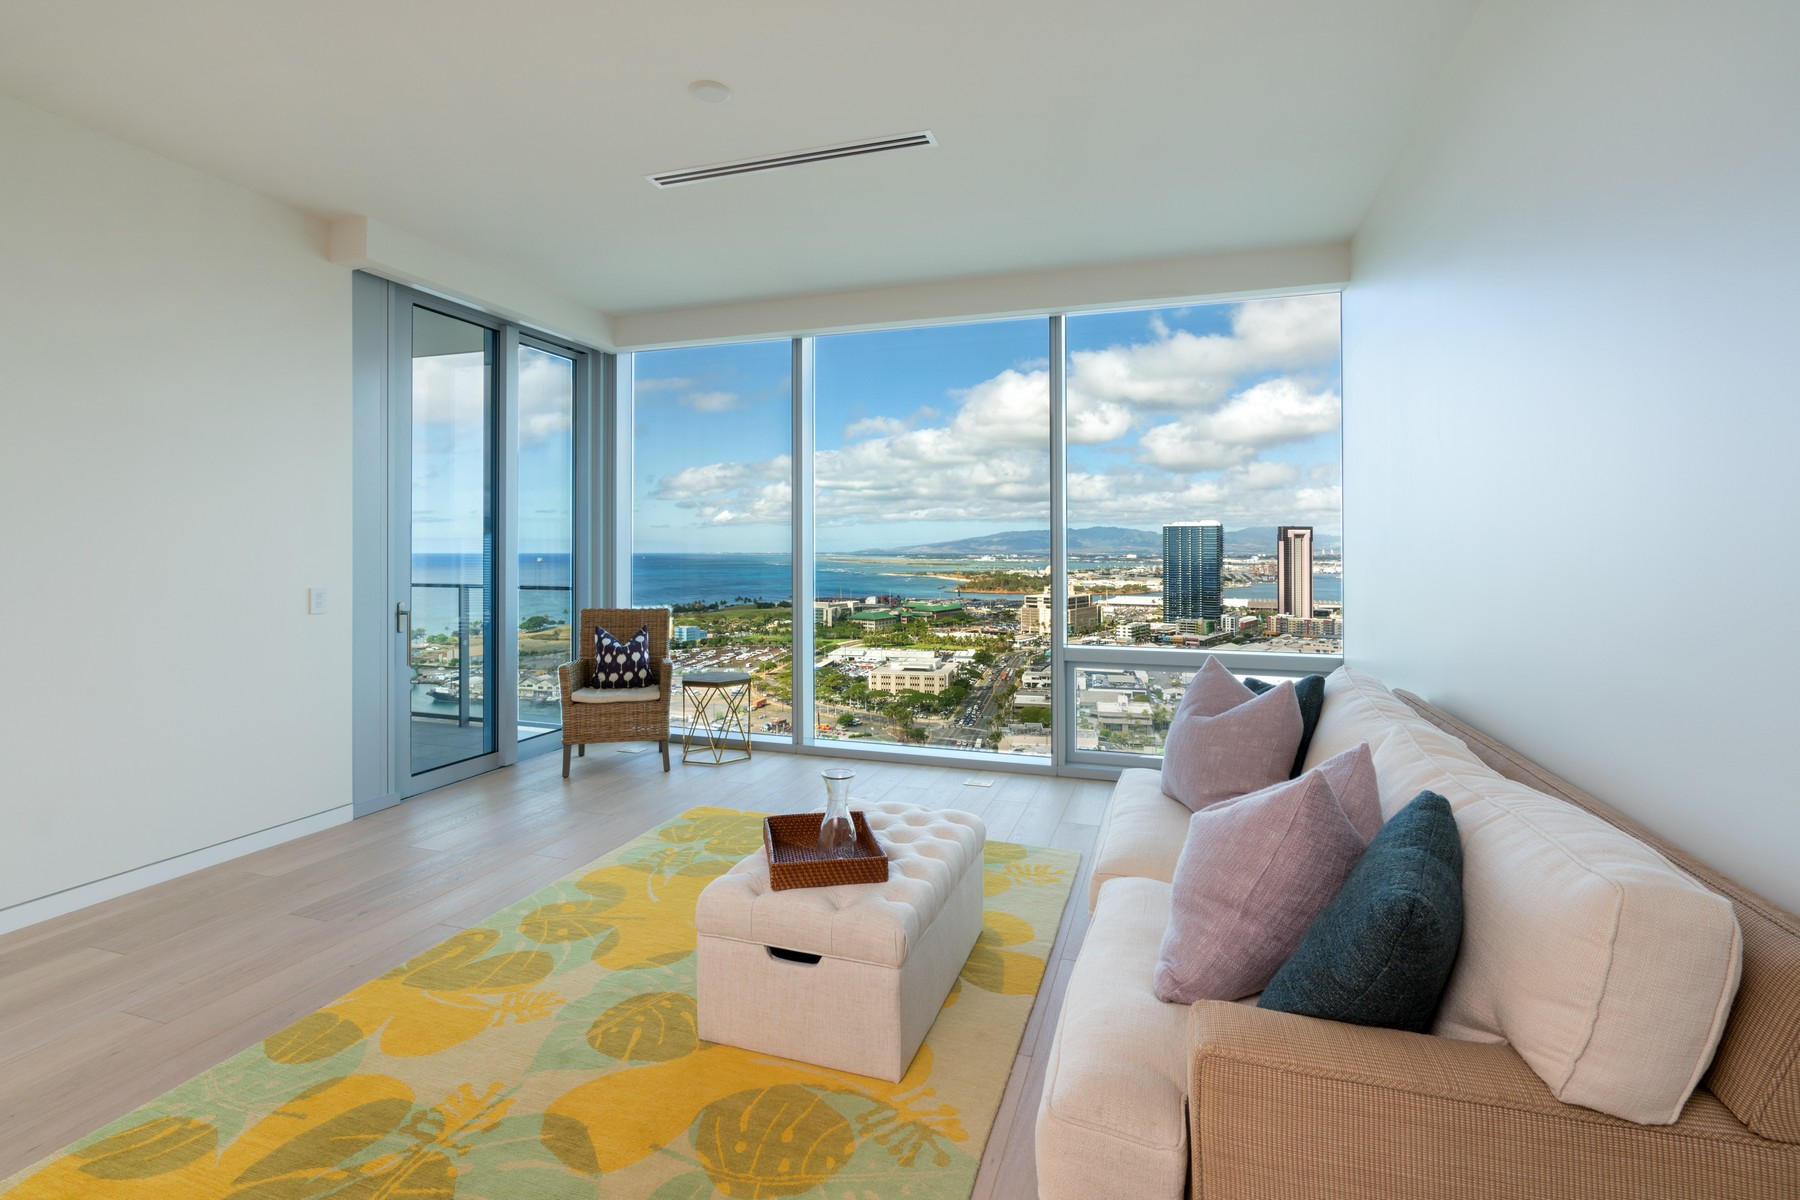 Кондоминиум для того Продажа на Panoramic Ocean View Waiea Condo 1118 Ala Moana Blvd #2903, Kakaako, Honolulu, Гавайи, 96814 Соединенные Штаты